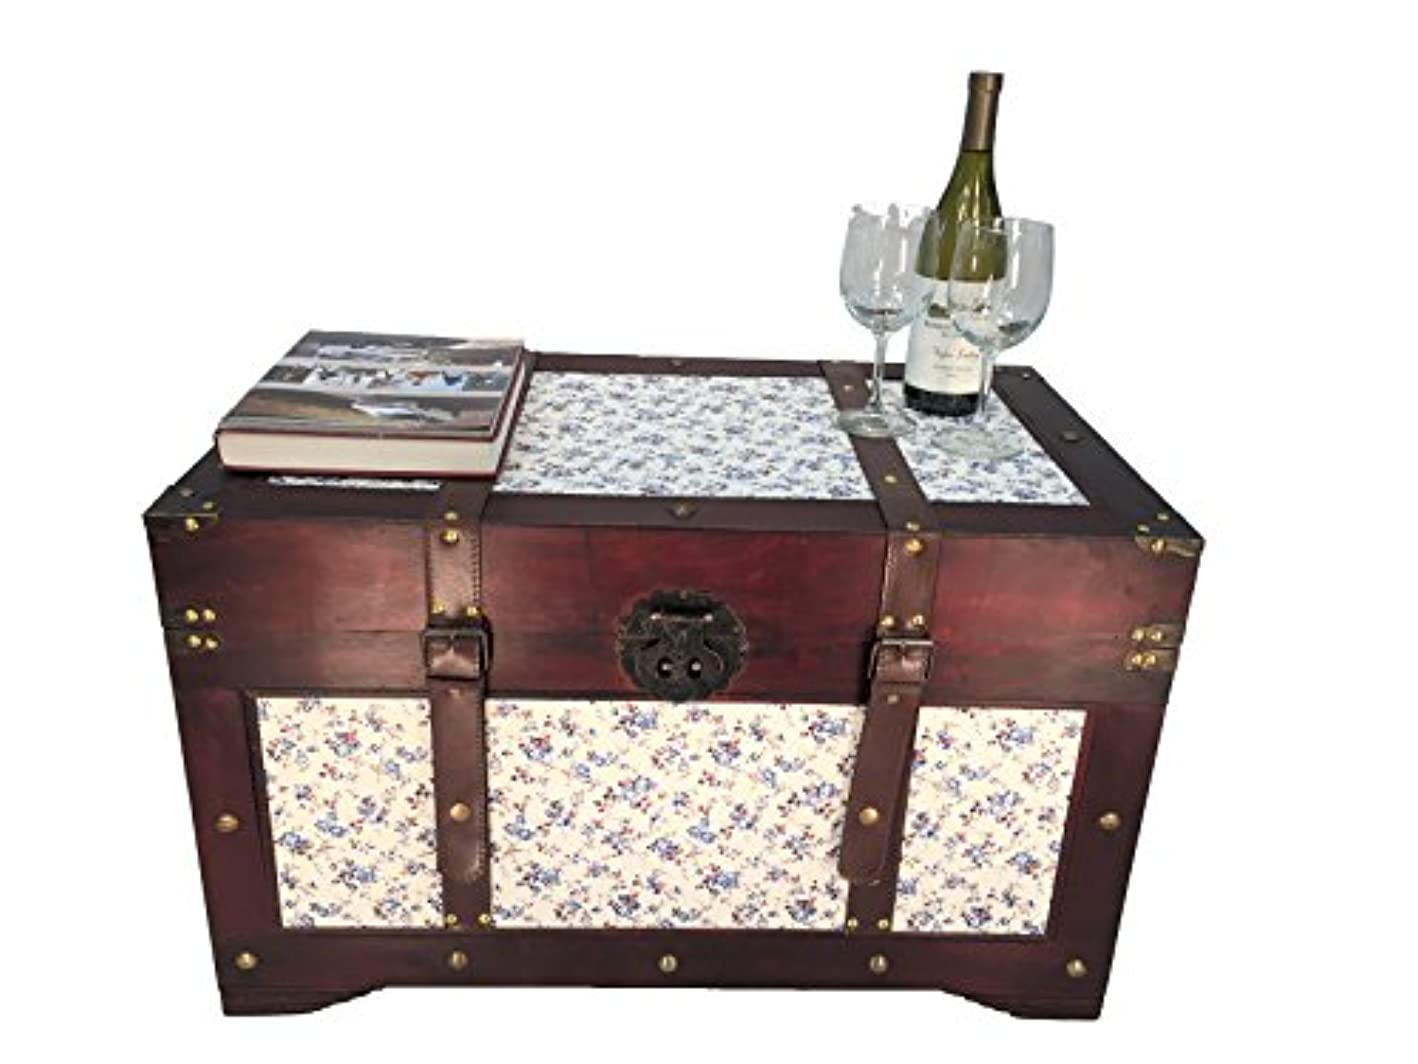 Styled Shopping Savannah Large Wood Storage Trunk Wooden Treasure Chest Blue